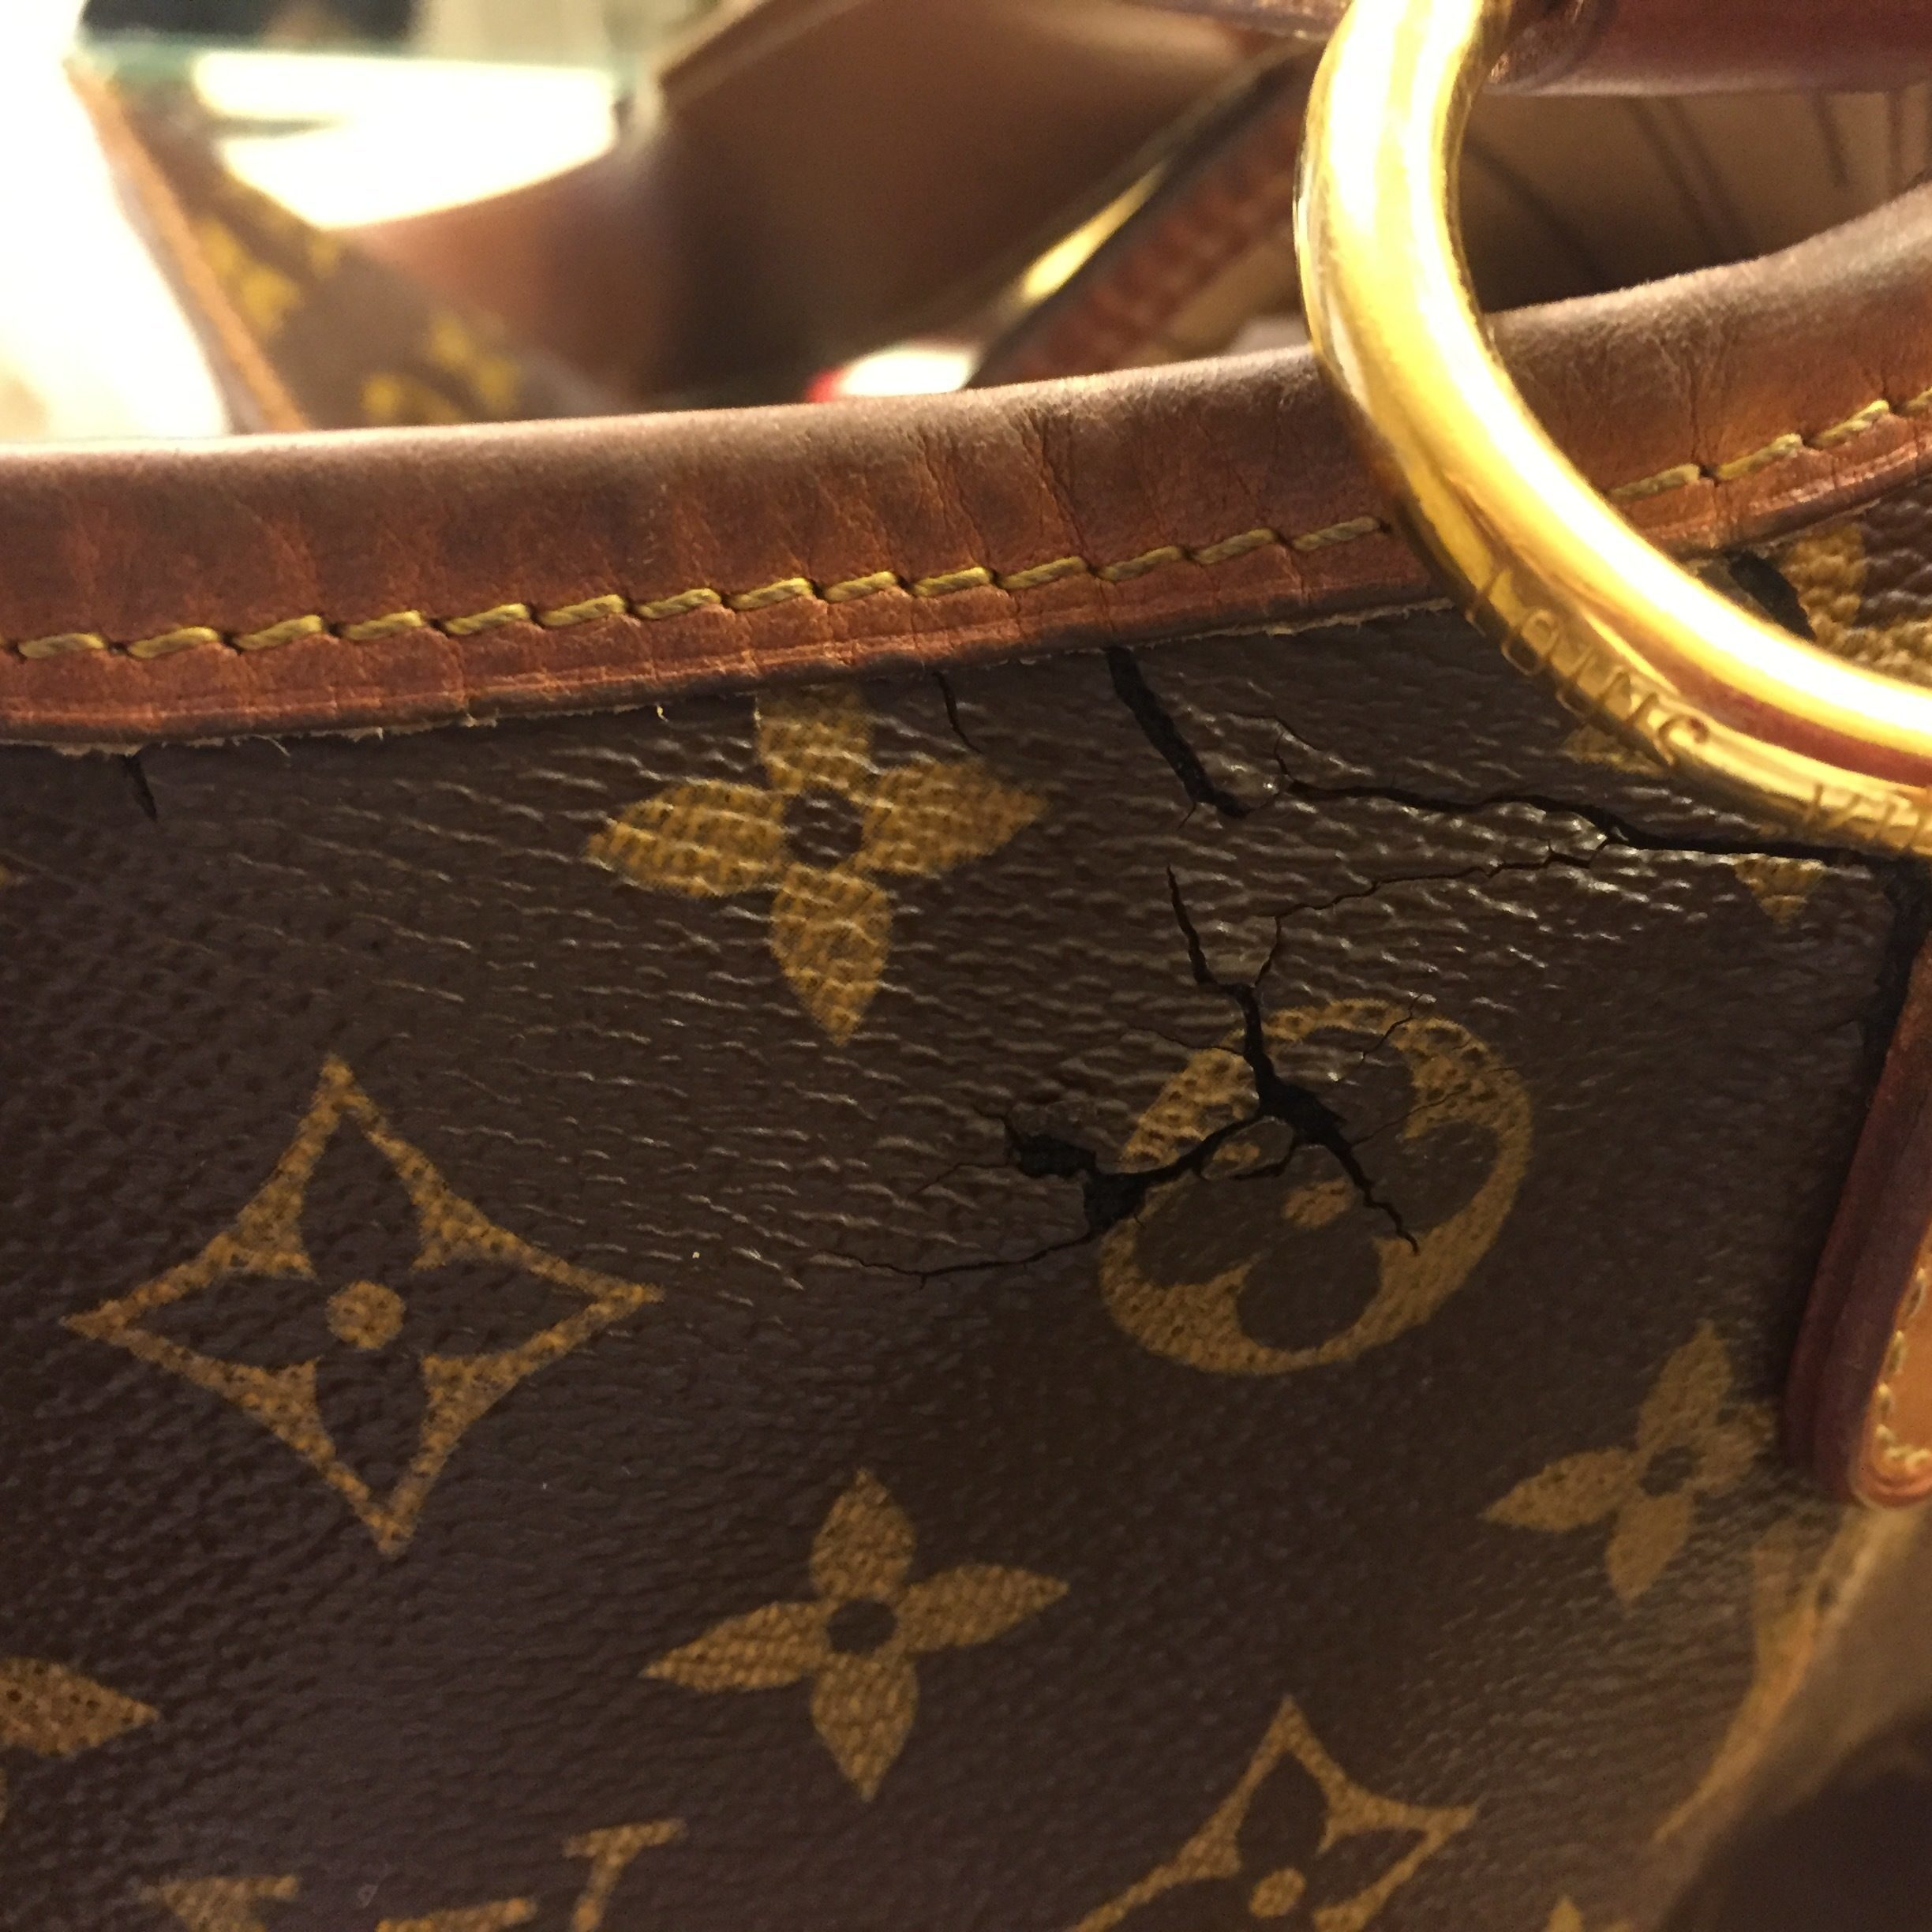 I Purchase A Louis Vuitton Delightful Gm From Birmingham Saks 3 Years Ago  As The 1st Year Of Having The Bag I Contacted The Store, Showed How It Was